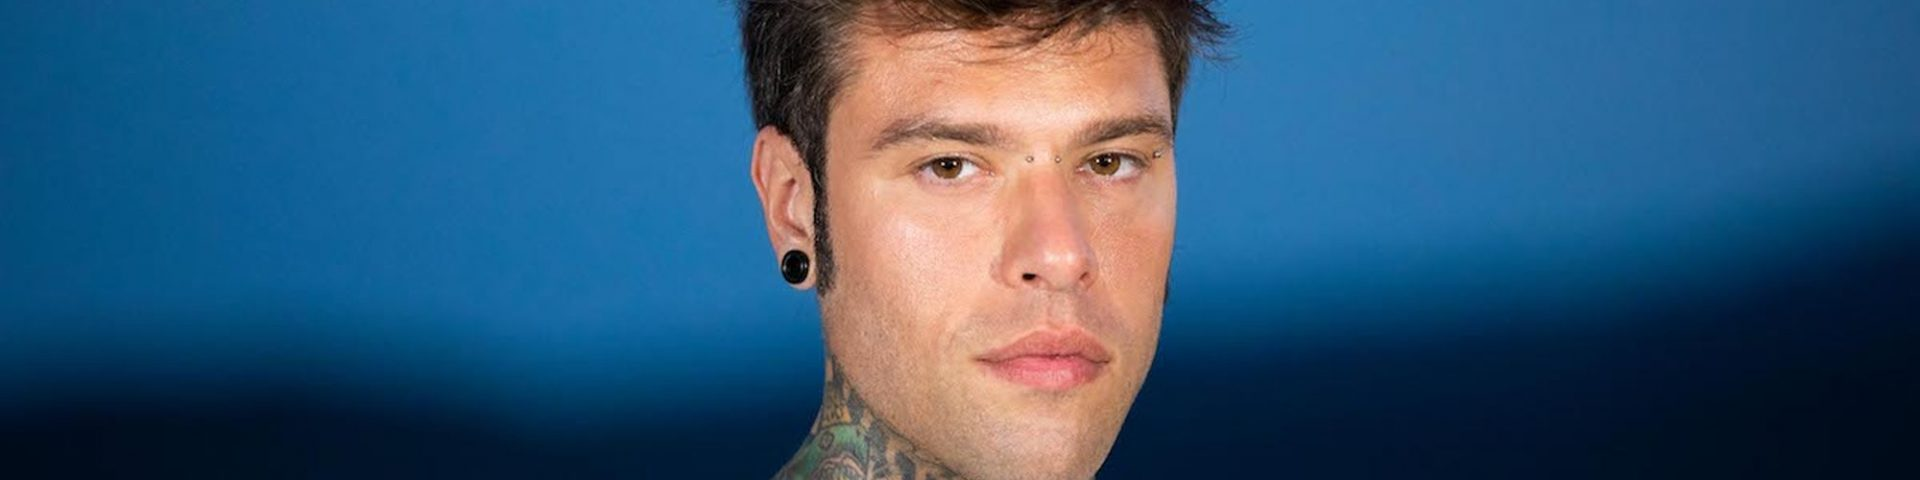 Fedez in concerto a Sounds Best 2019 – 27 giugno